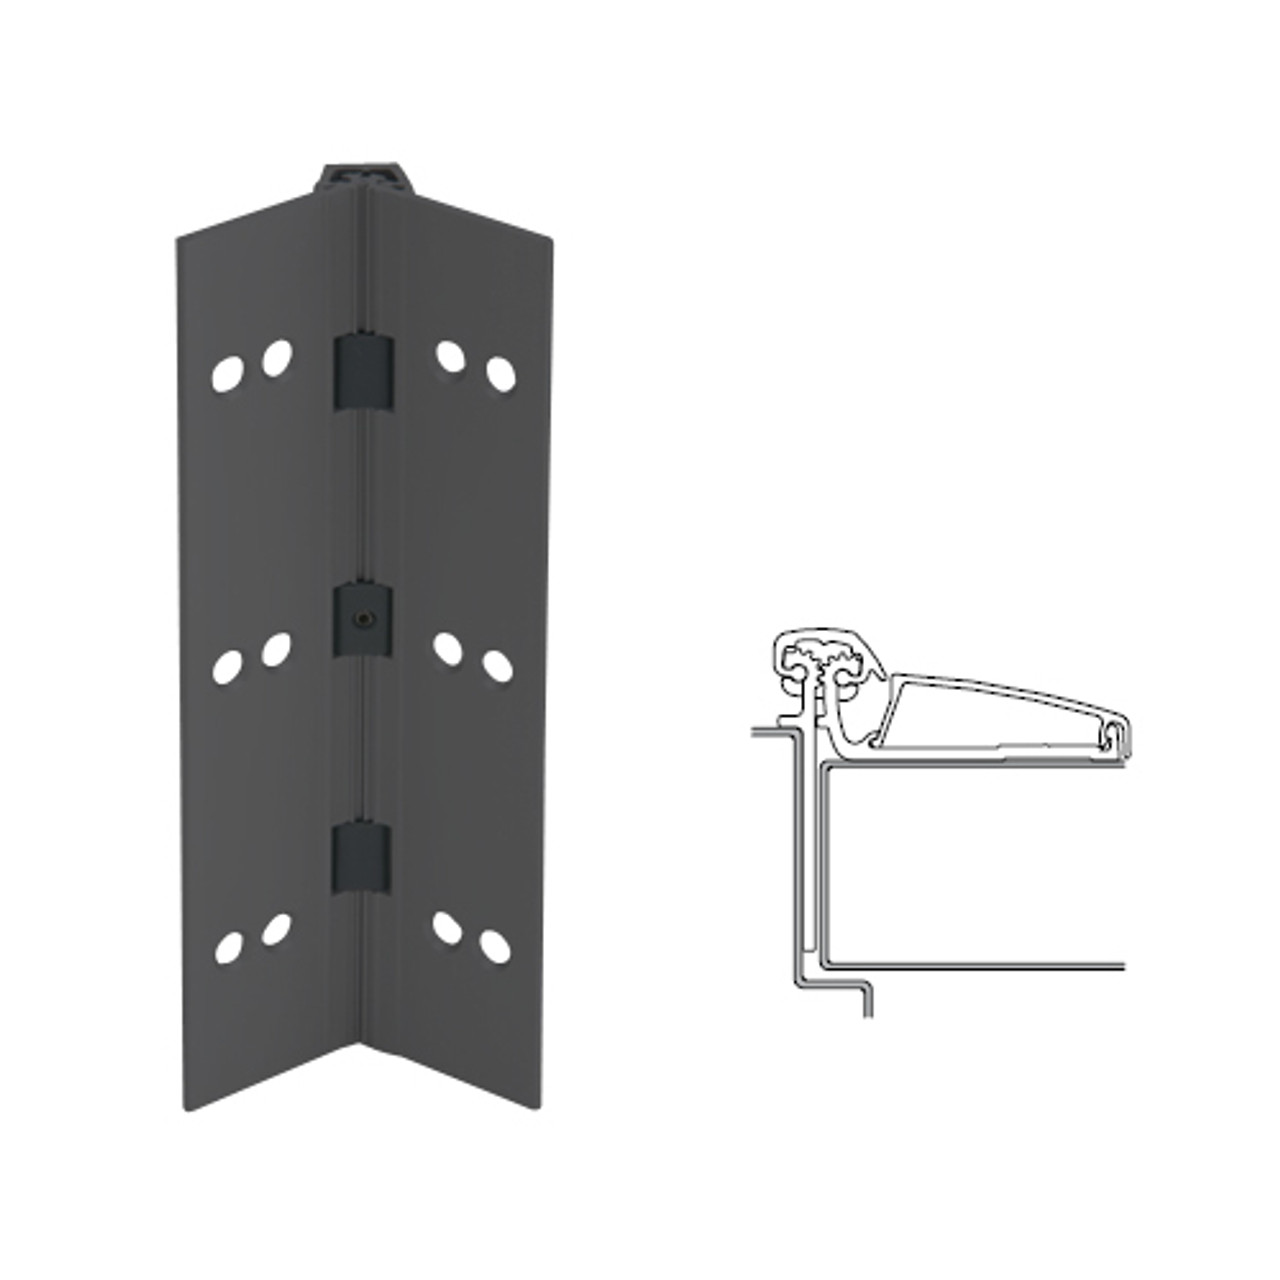 046XY-315AN-120-TF IVES Adjustable Half Surface Continuous Geared Hinges with Thread Forming Screws in Anodized Black